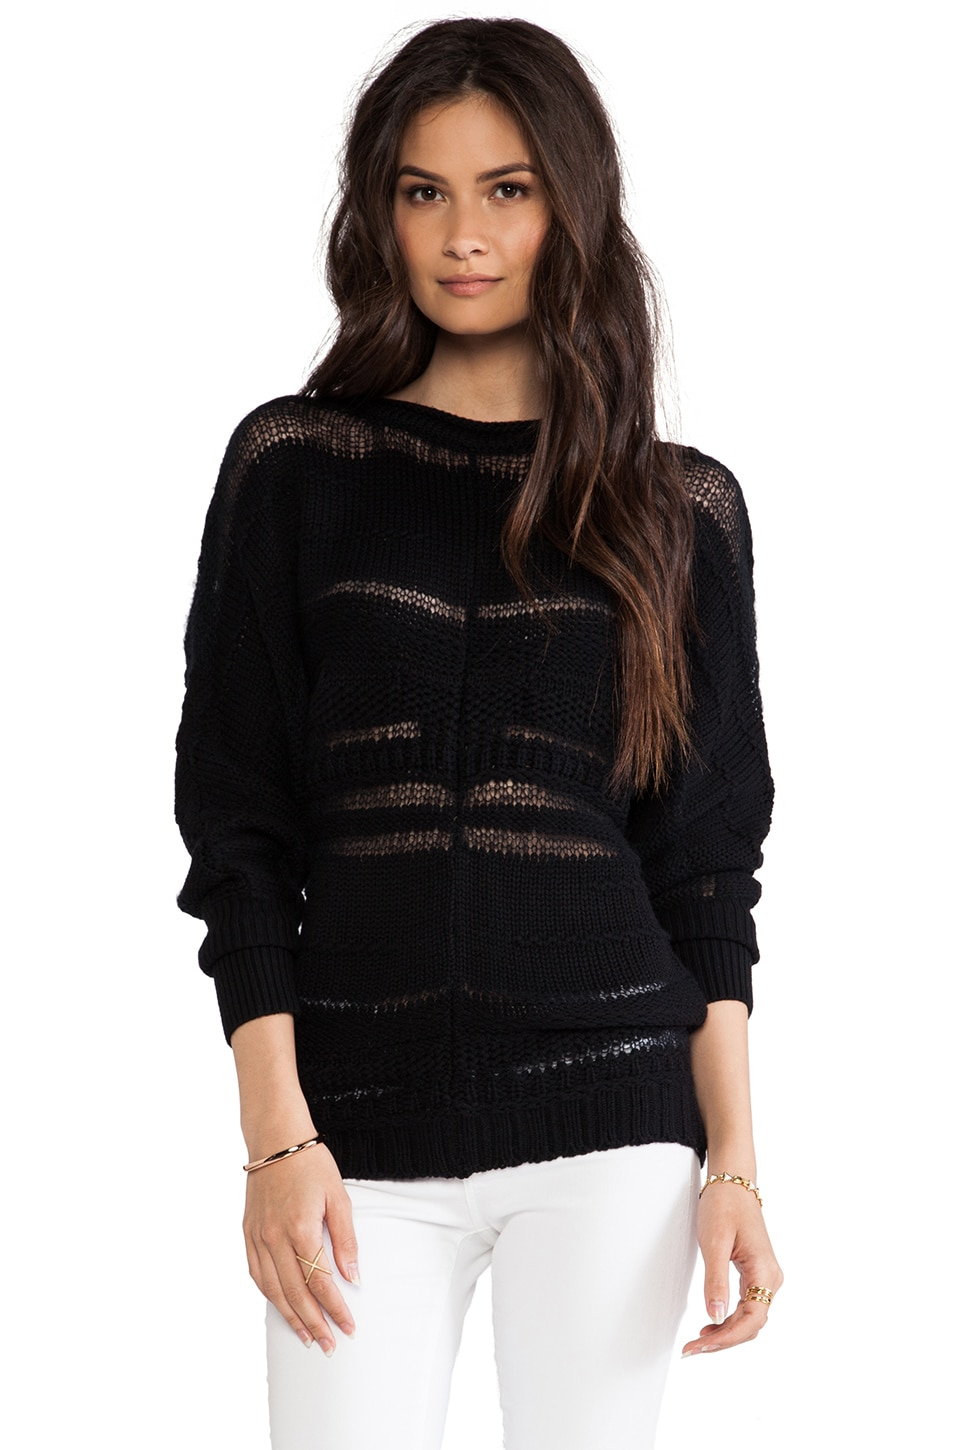 Catherine Malandrino Abijah Wool Boatneck Sweater in Noir